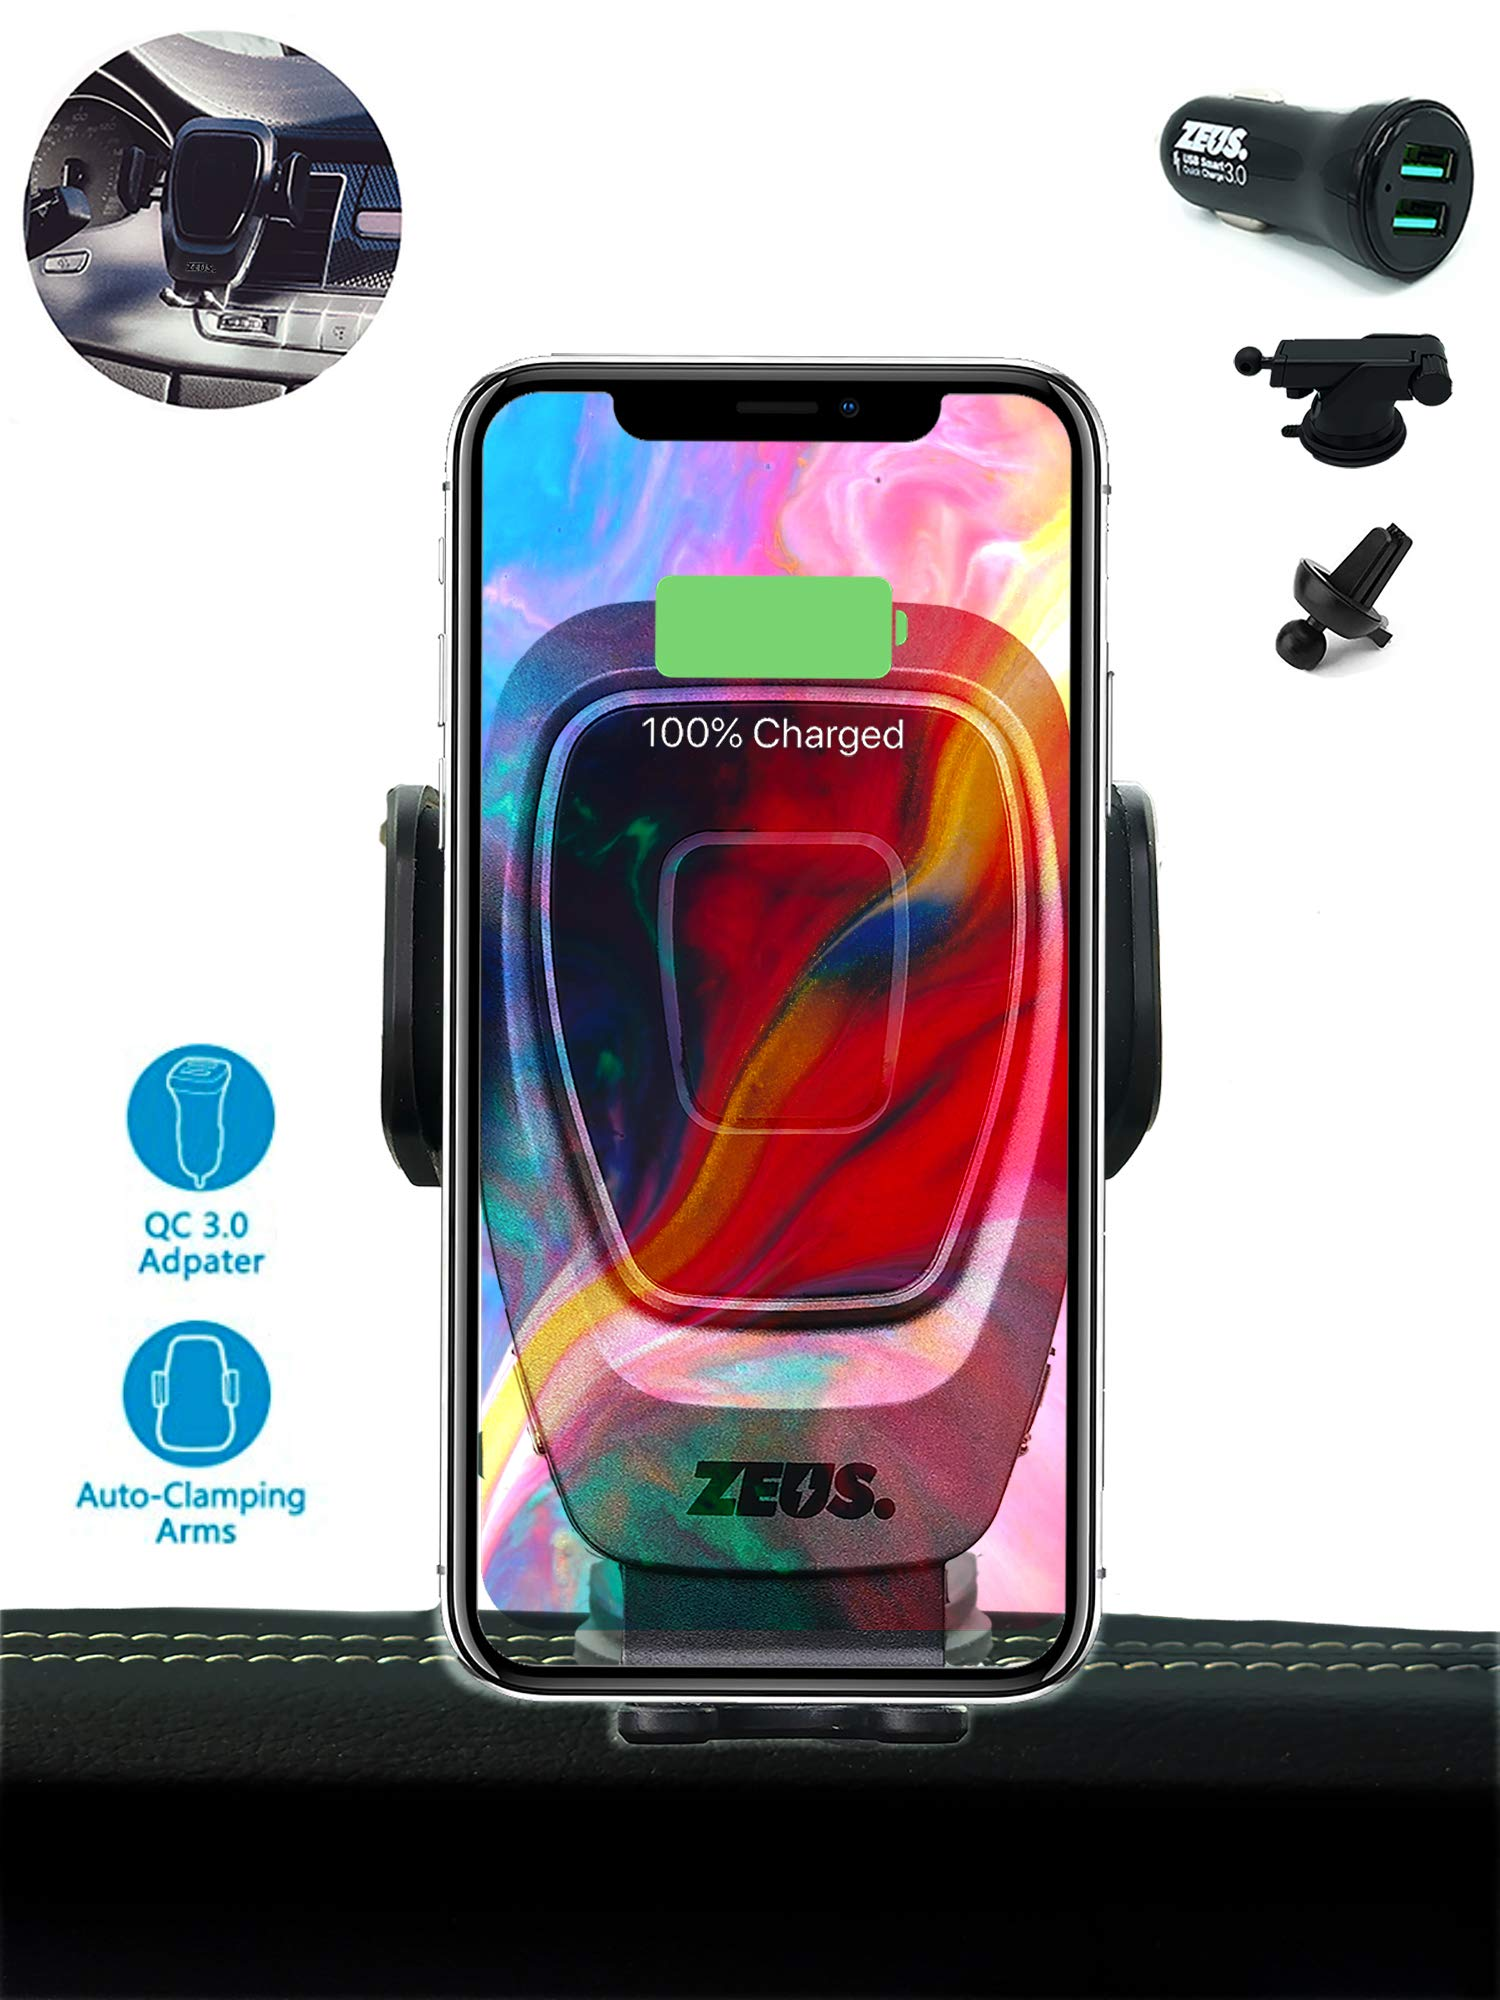 ZEUS 15W Wireless Car Charger Mount, Automatic Clamping, Power Fast Charging Qi Car Charger 10W 7.5W, Vent Dashboard Phone Holder with QC 3.0 Charger, Compatible iPhone Xs Max XR X 8 S10 S9 S8 Note by ZEUS